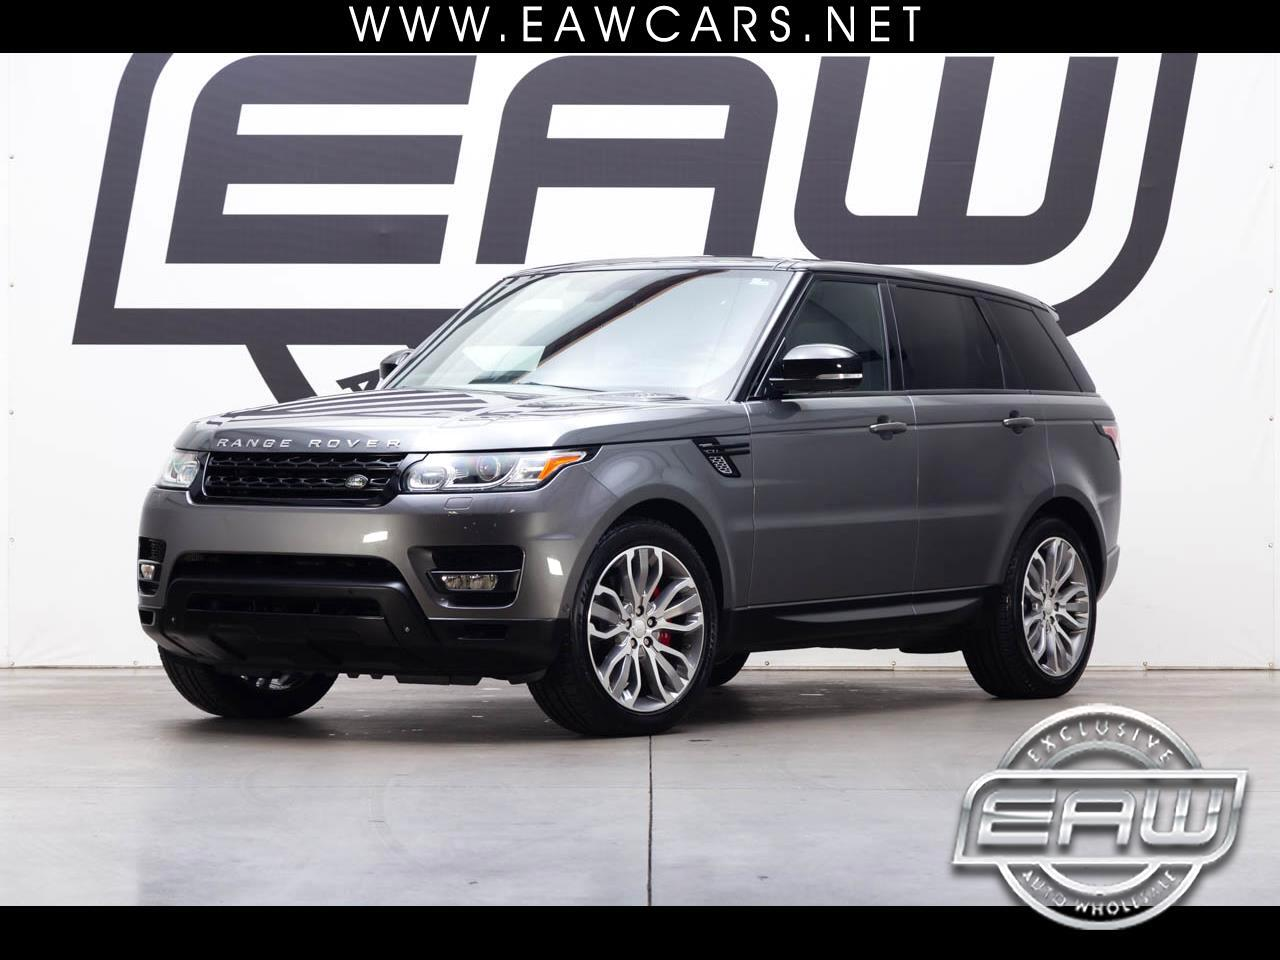 2014 Land Rover Range Rover Sport SUPERCHARGED 4WD